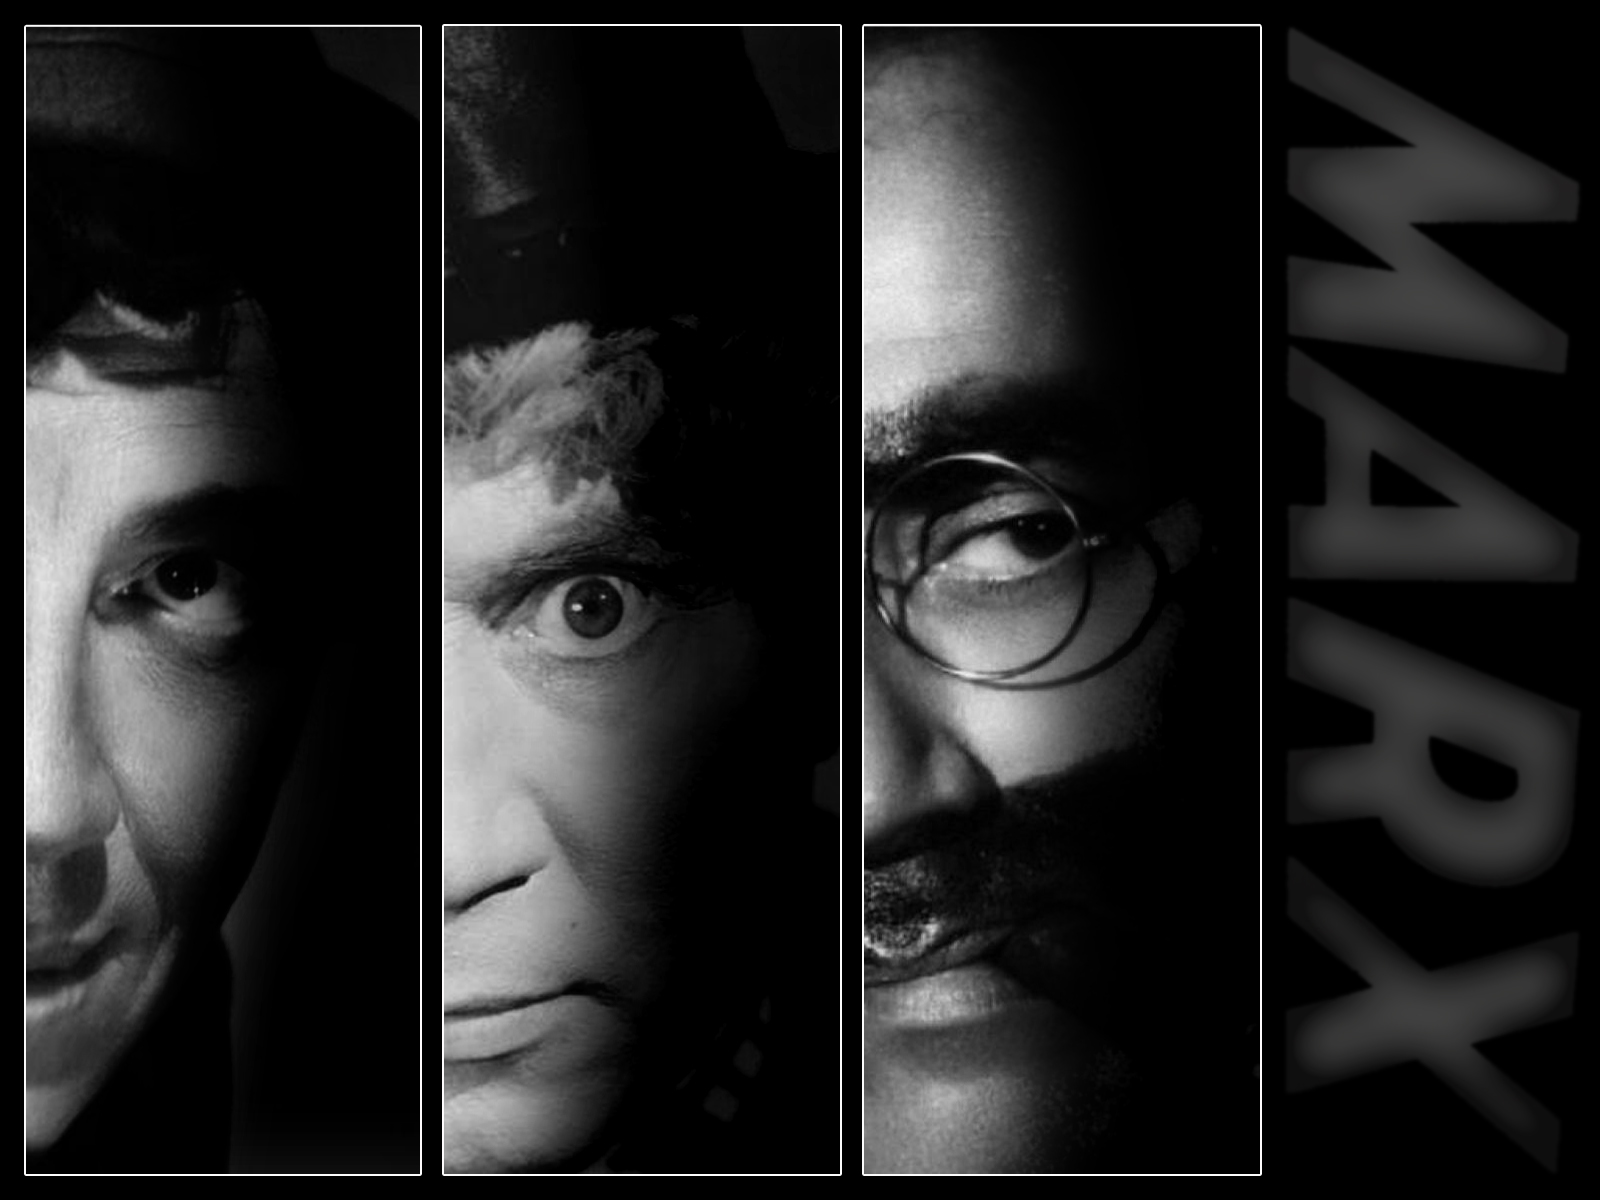 1600x1200 - Marx Brothers Wallpapers 4